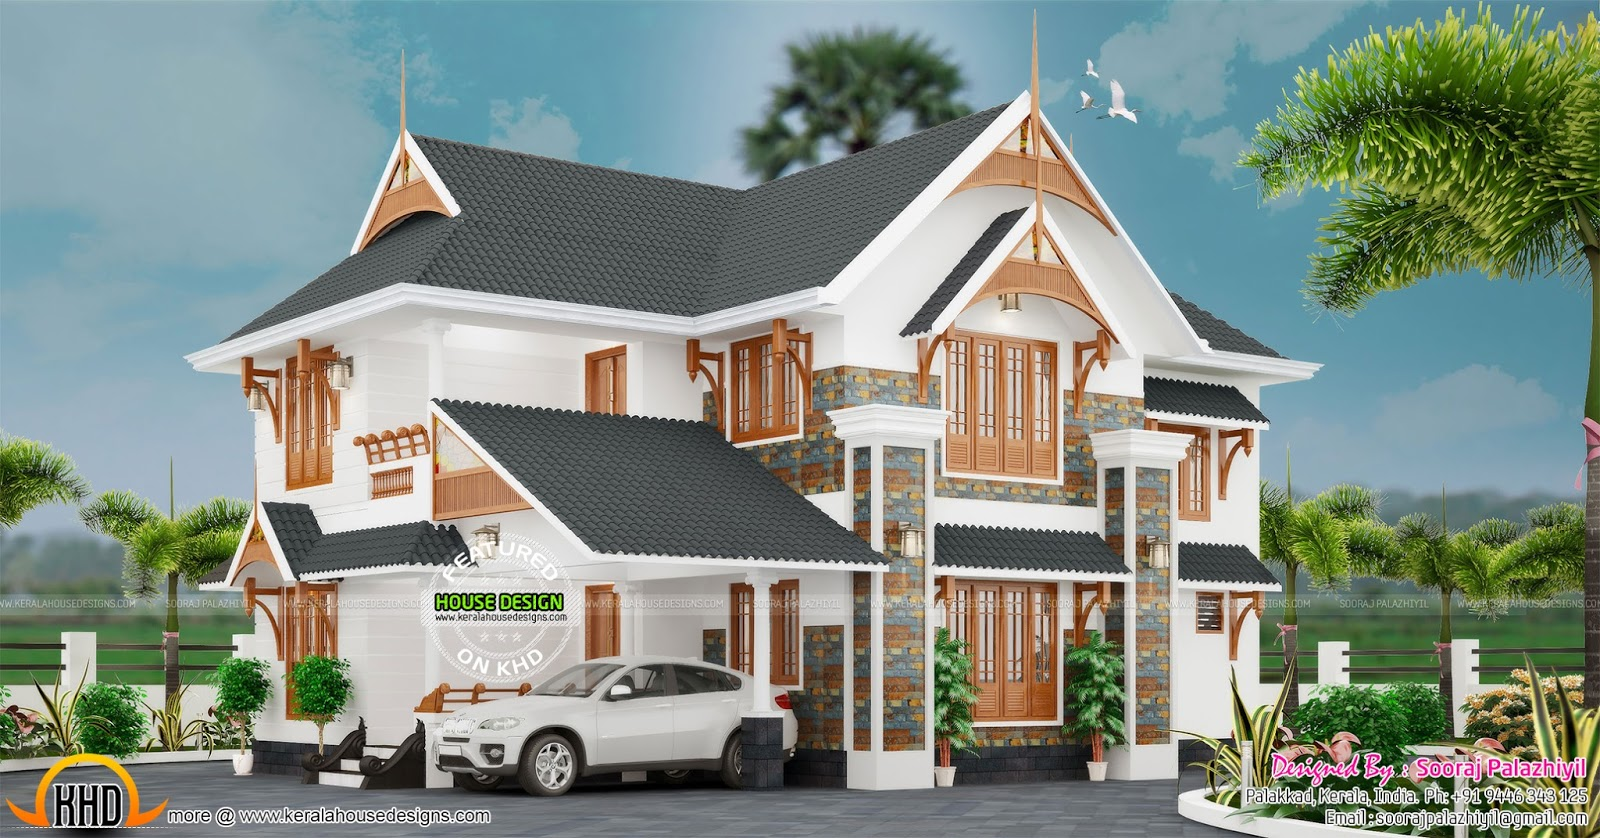 Beautiful elegant home design kerala home design and for Elegant home design